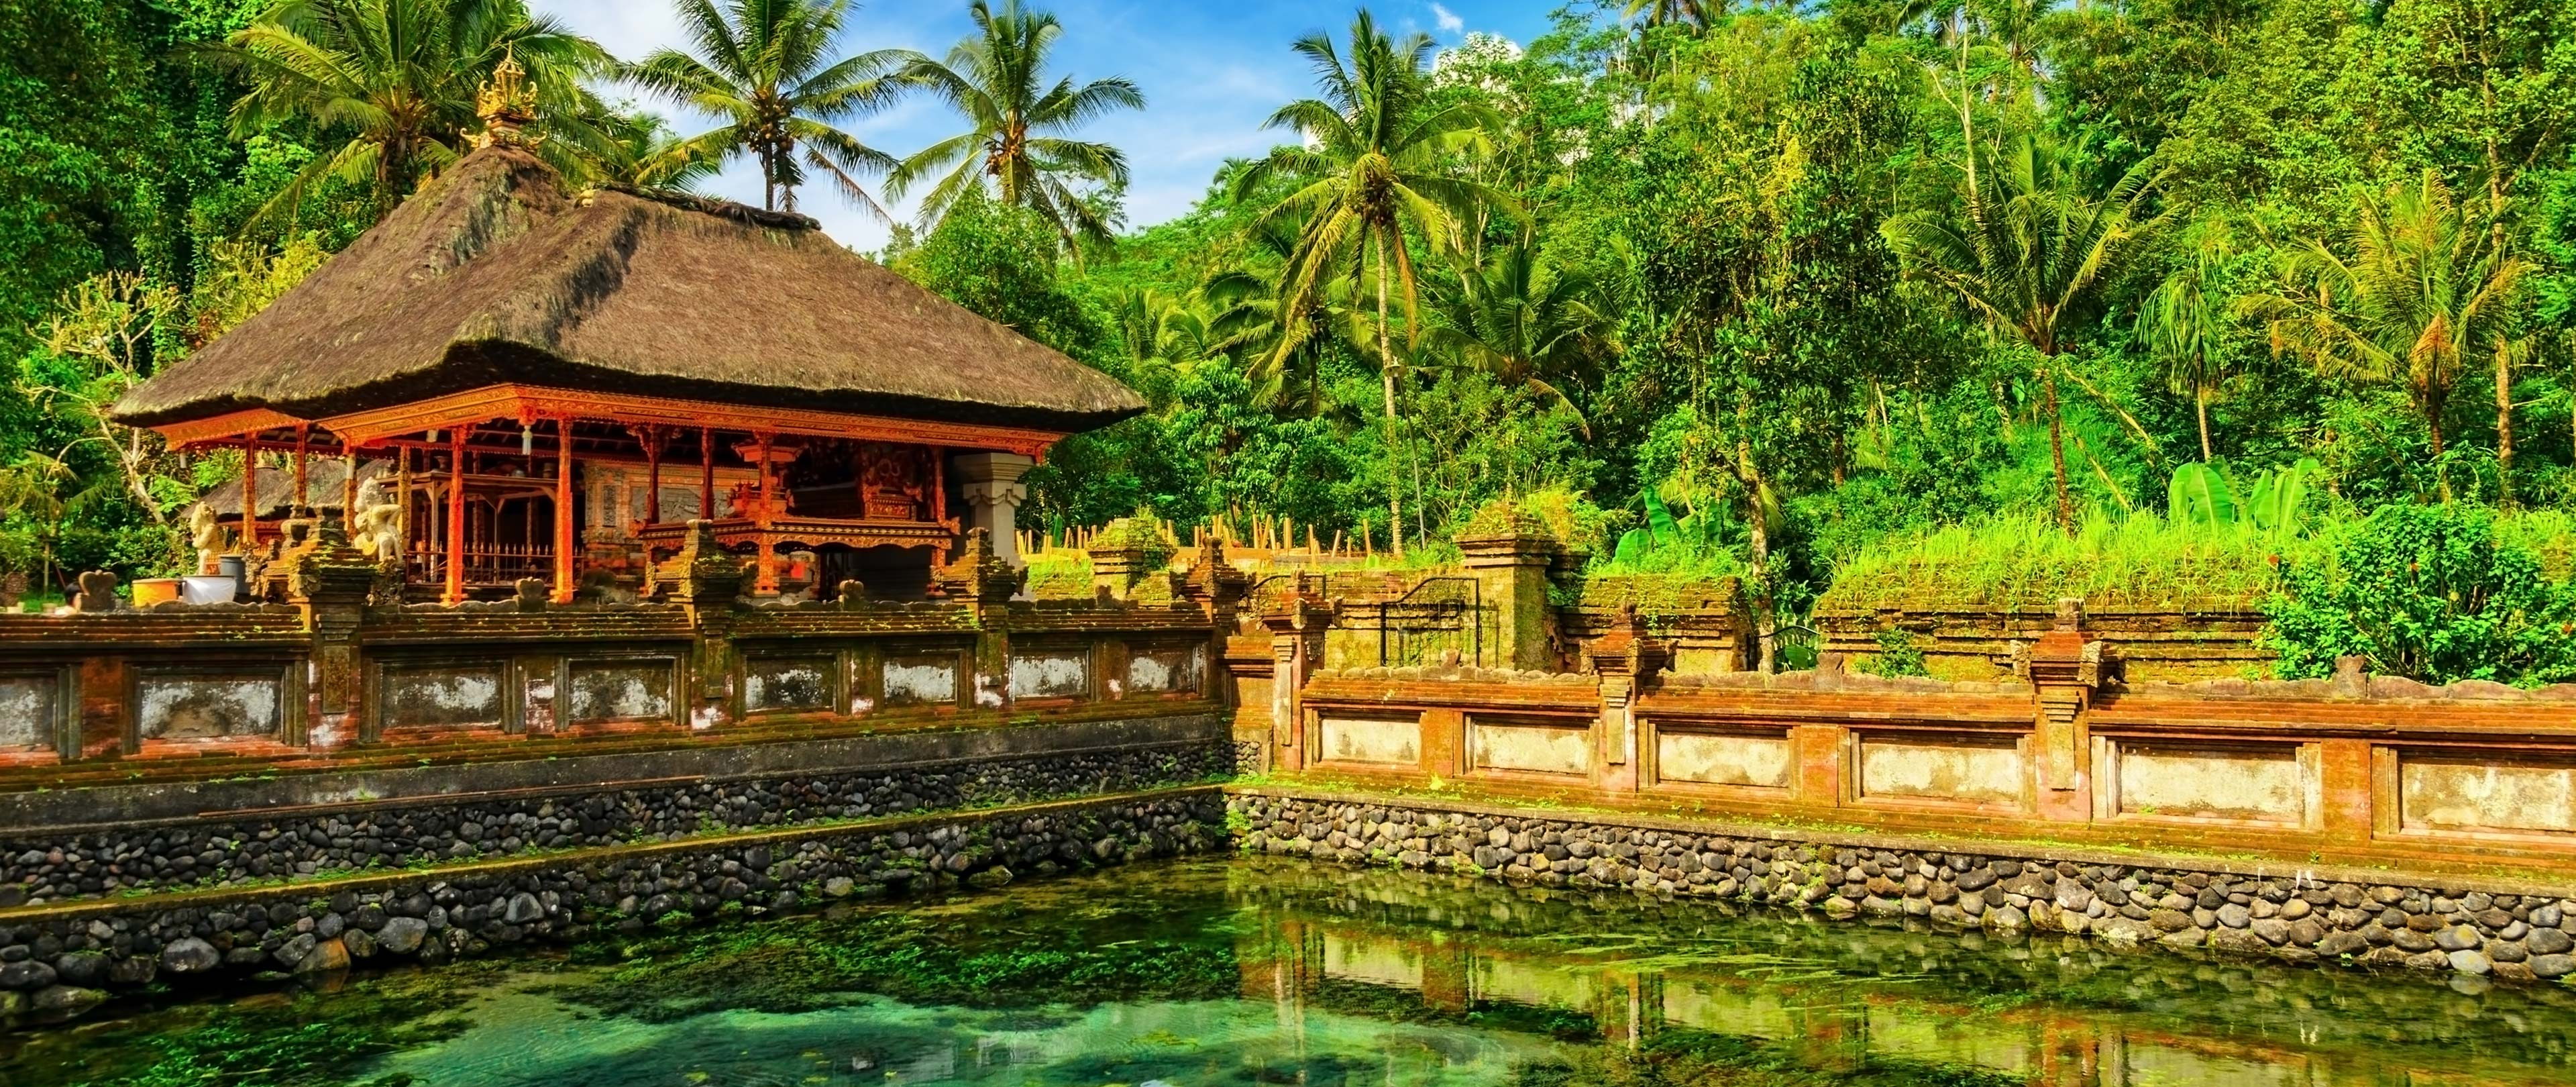 Where To Go When You Visit Bali